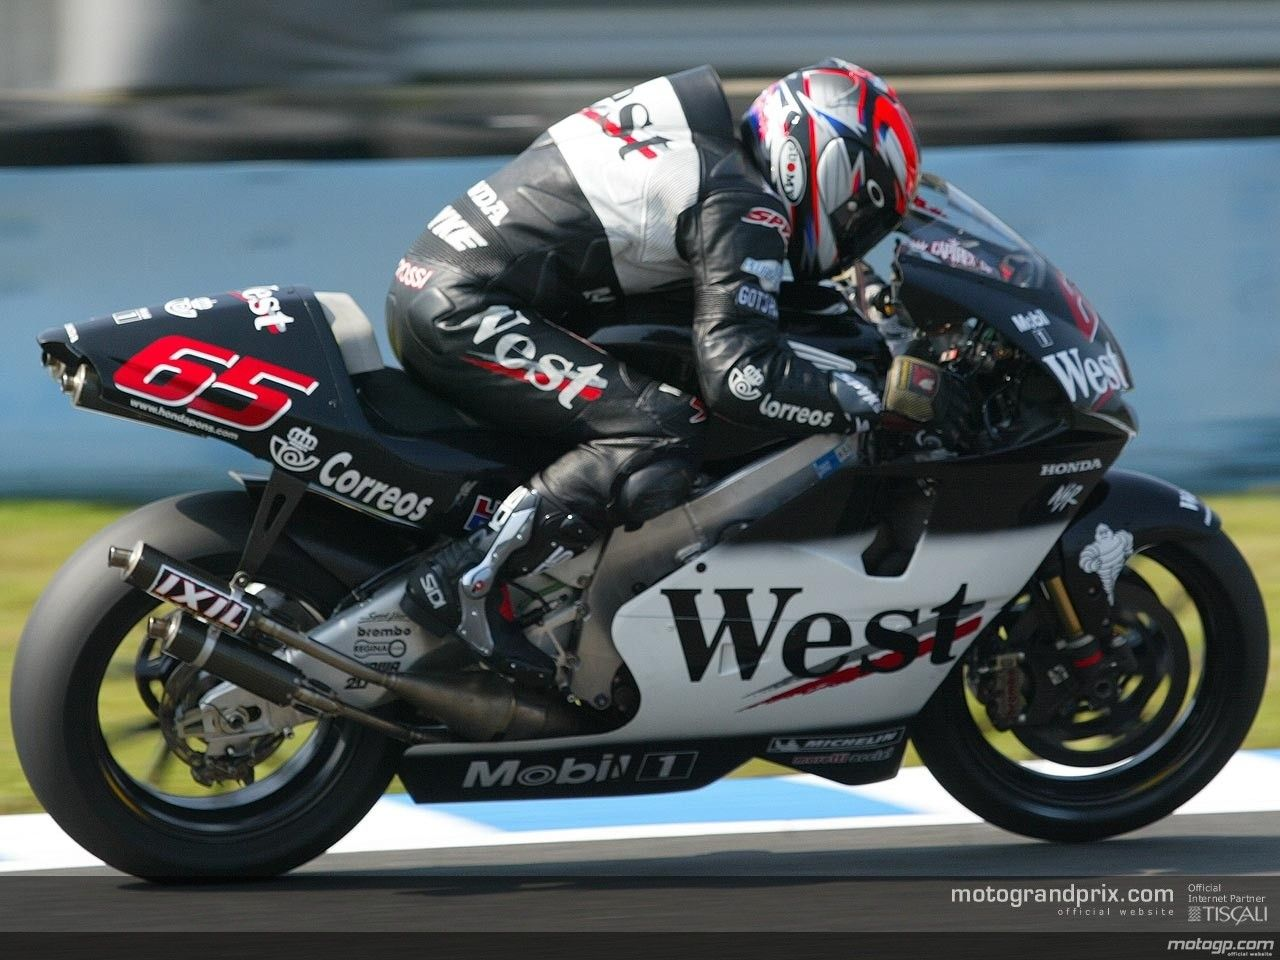 When i first got into motogp this was my favourite bike mostly in fact